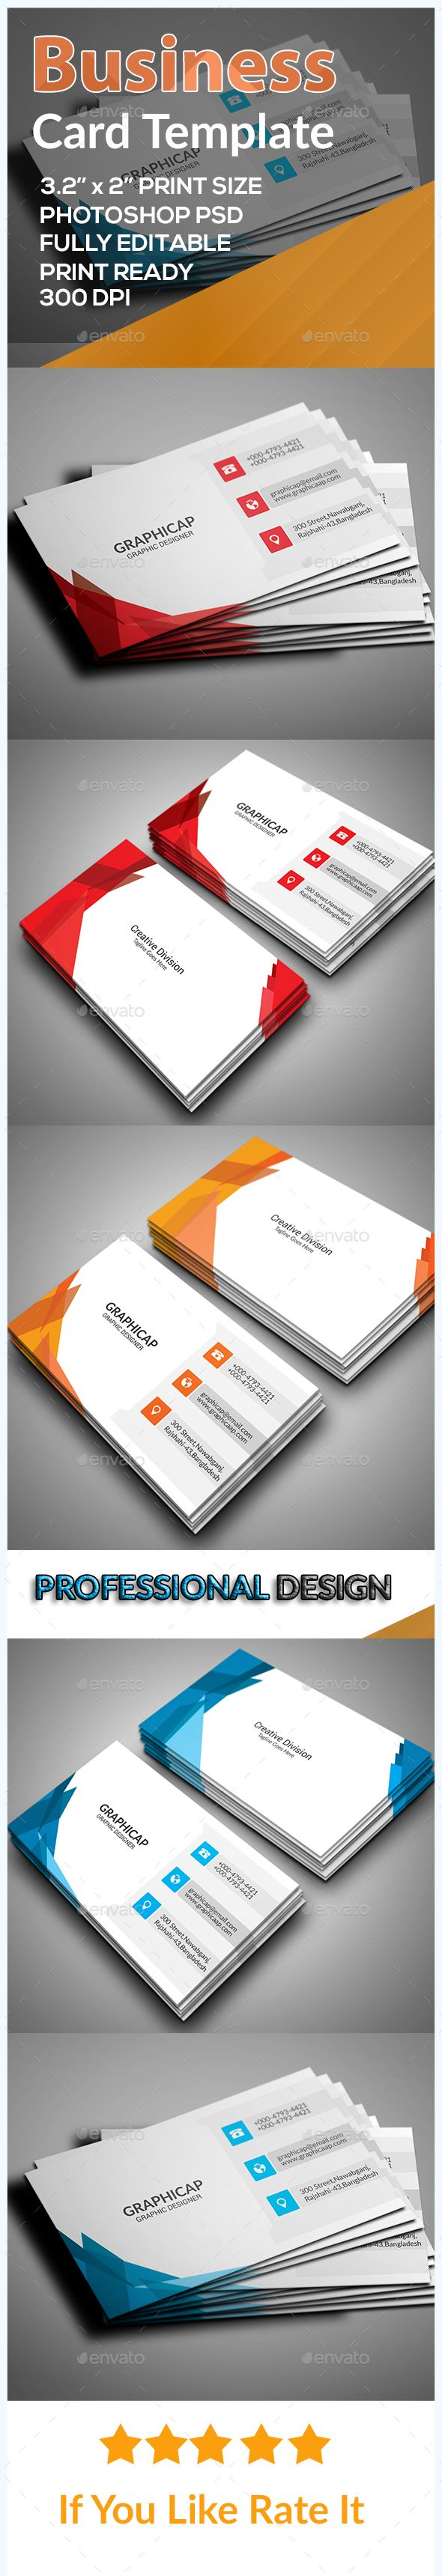 194 best business card templates designs images on pinterest